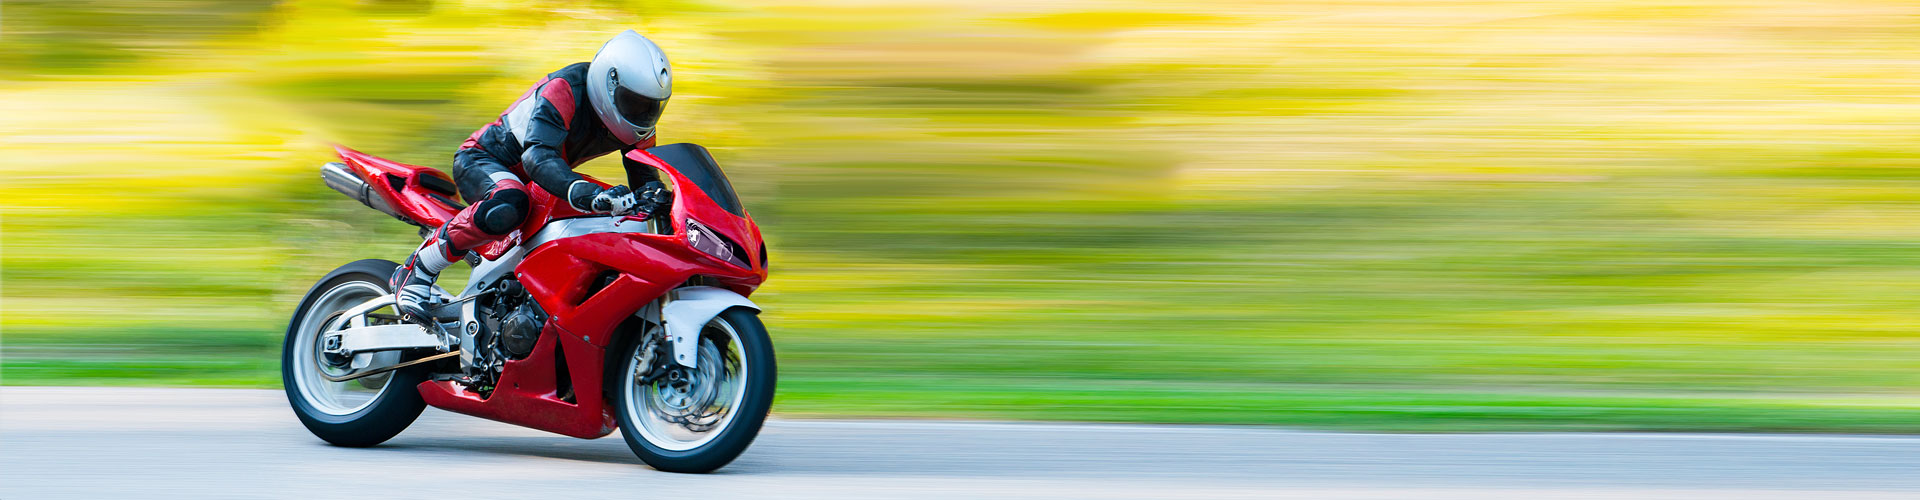 Motorcycle MOT Tests in Chelmsford